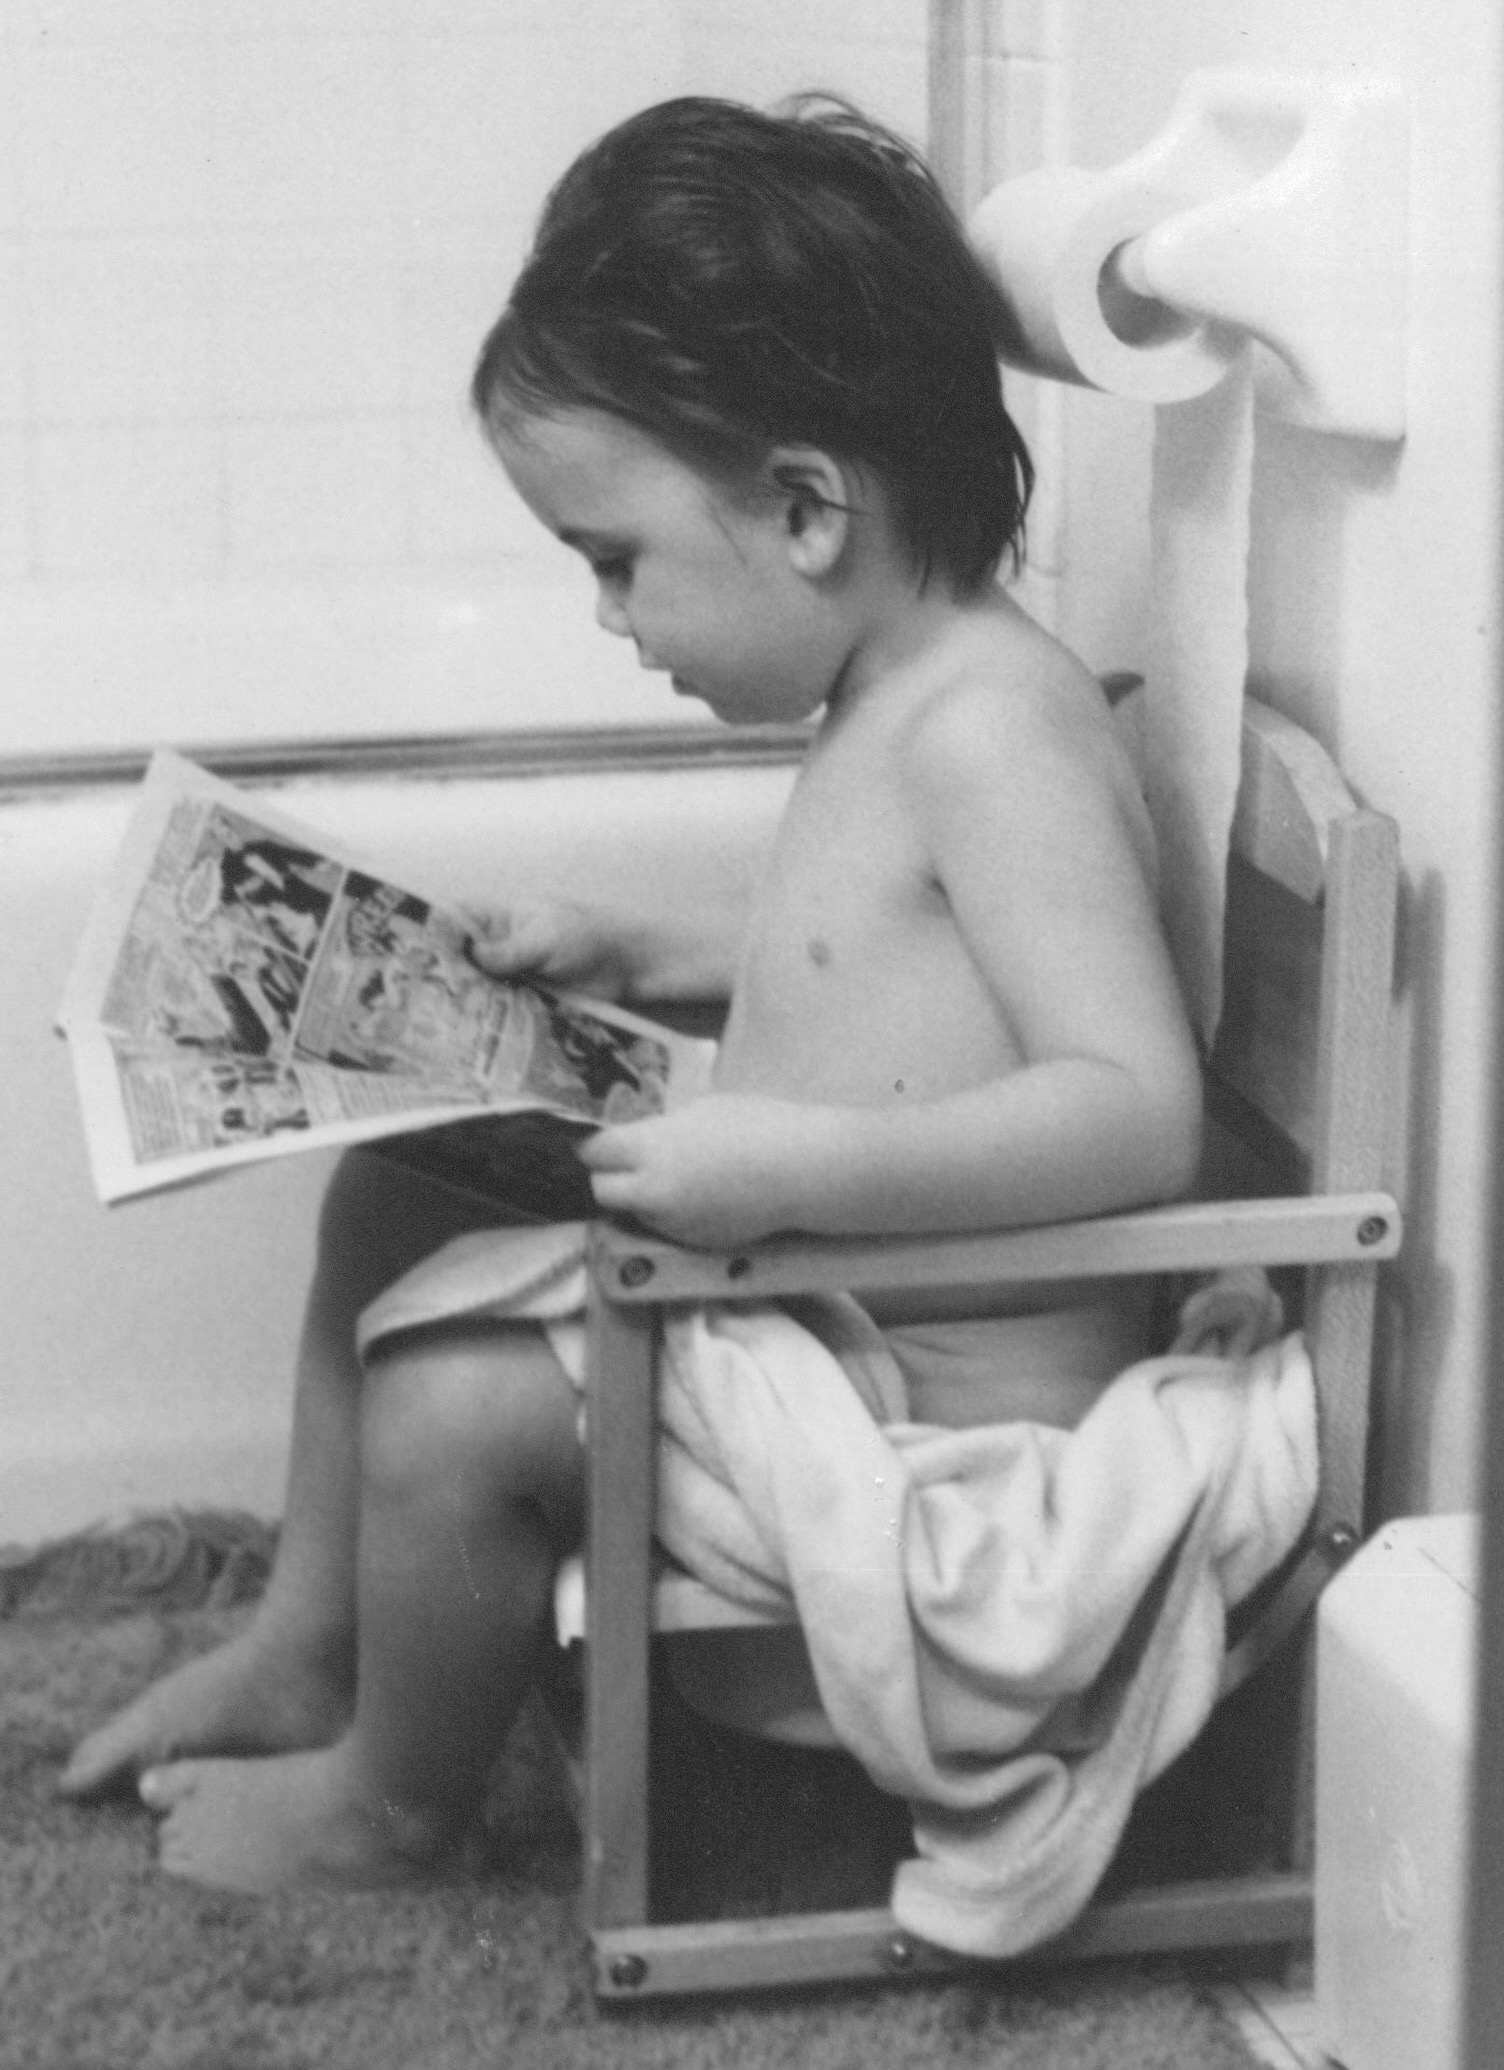 If you look closely, you'll see the author is reading a Wonder Woman comic.